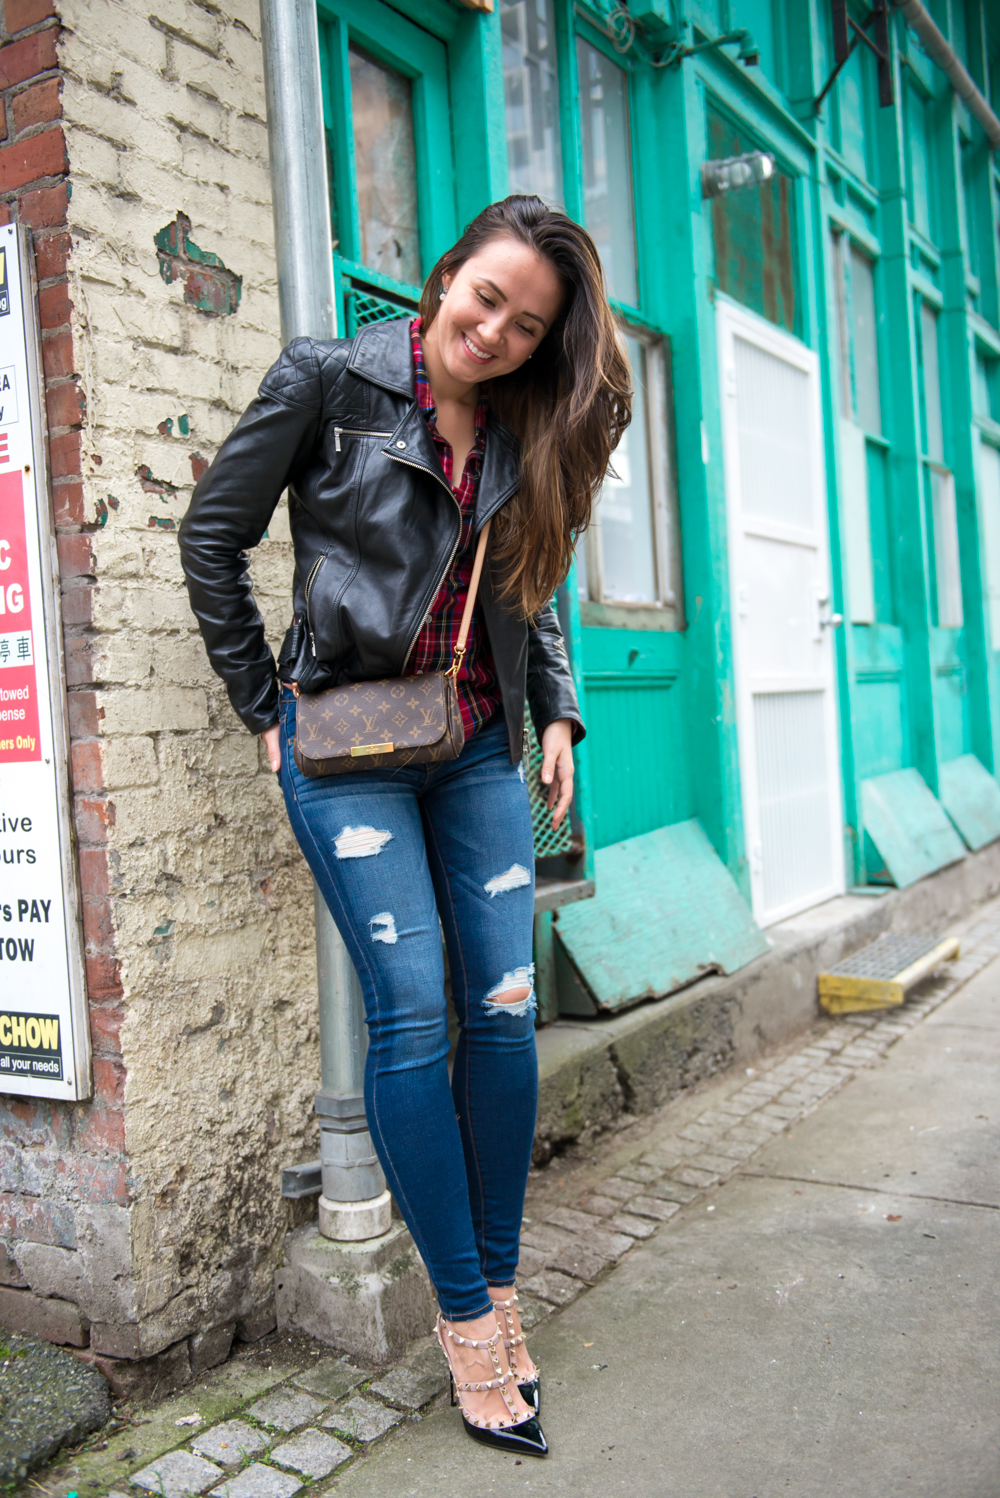 How to choose the right leather jacket